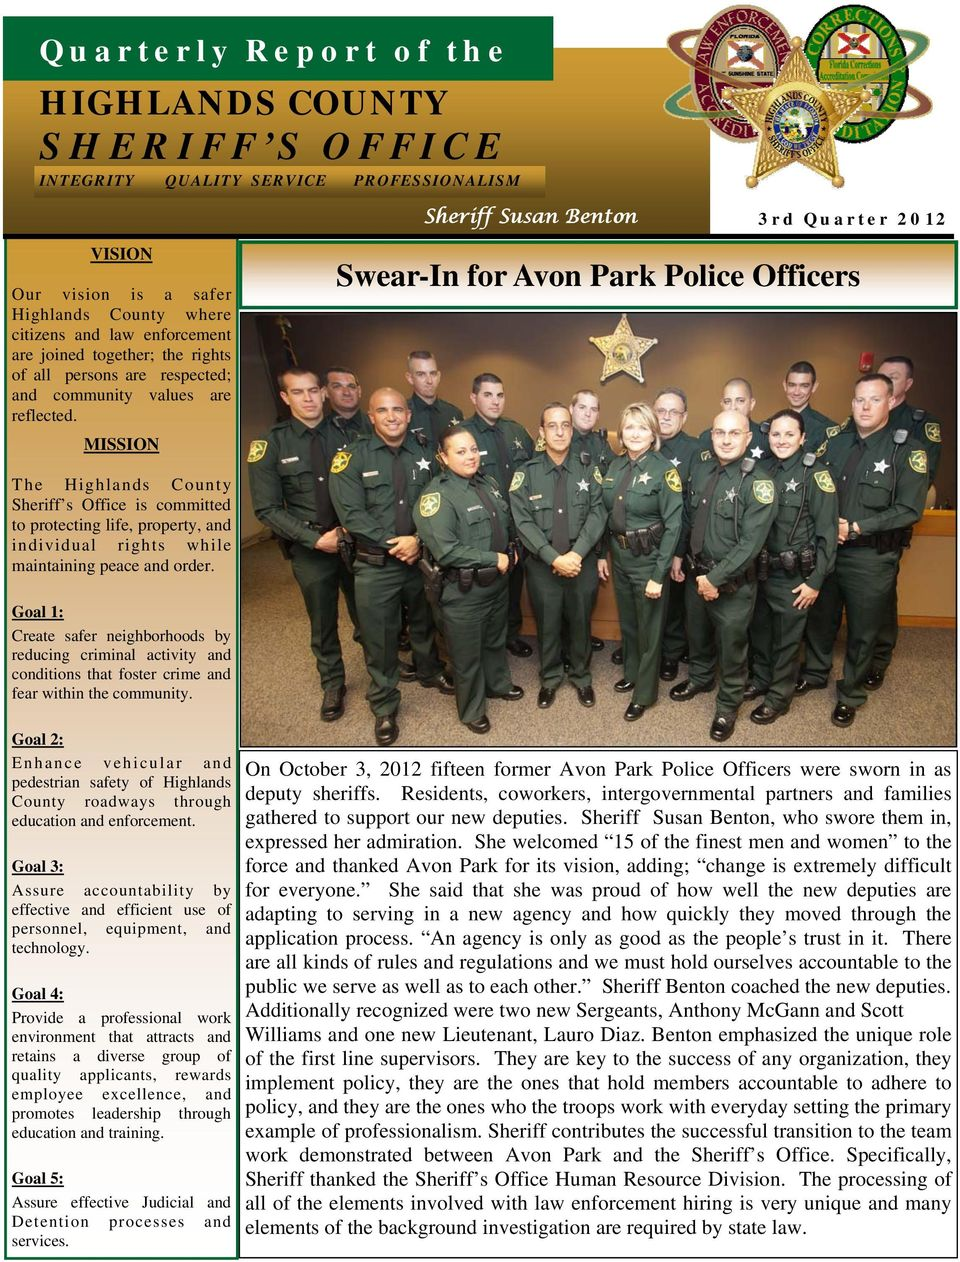 MISSION Swear-In for Avon Park Police Officers The Highlands County Sheriff s Office is committed to protecting life, property, and individual rights while maintaining peace and order.